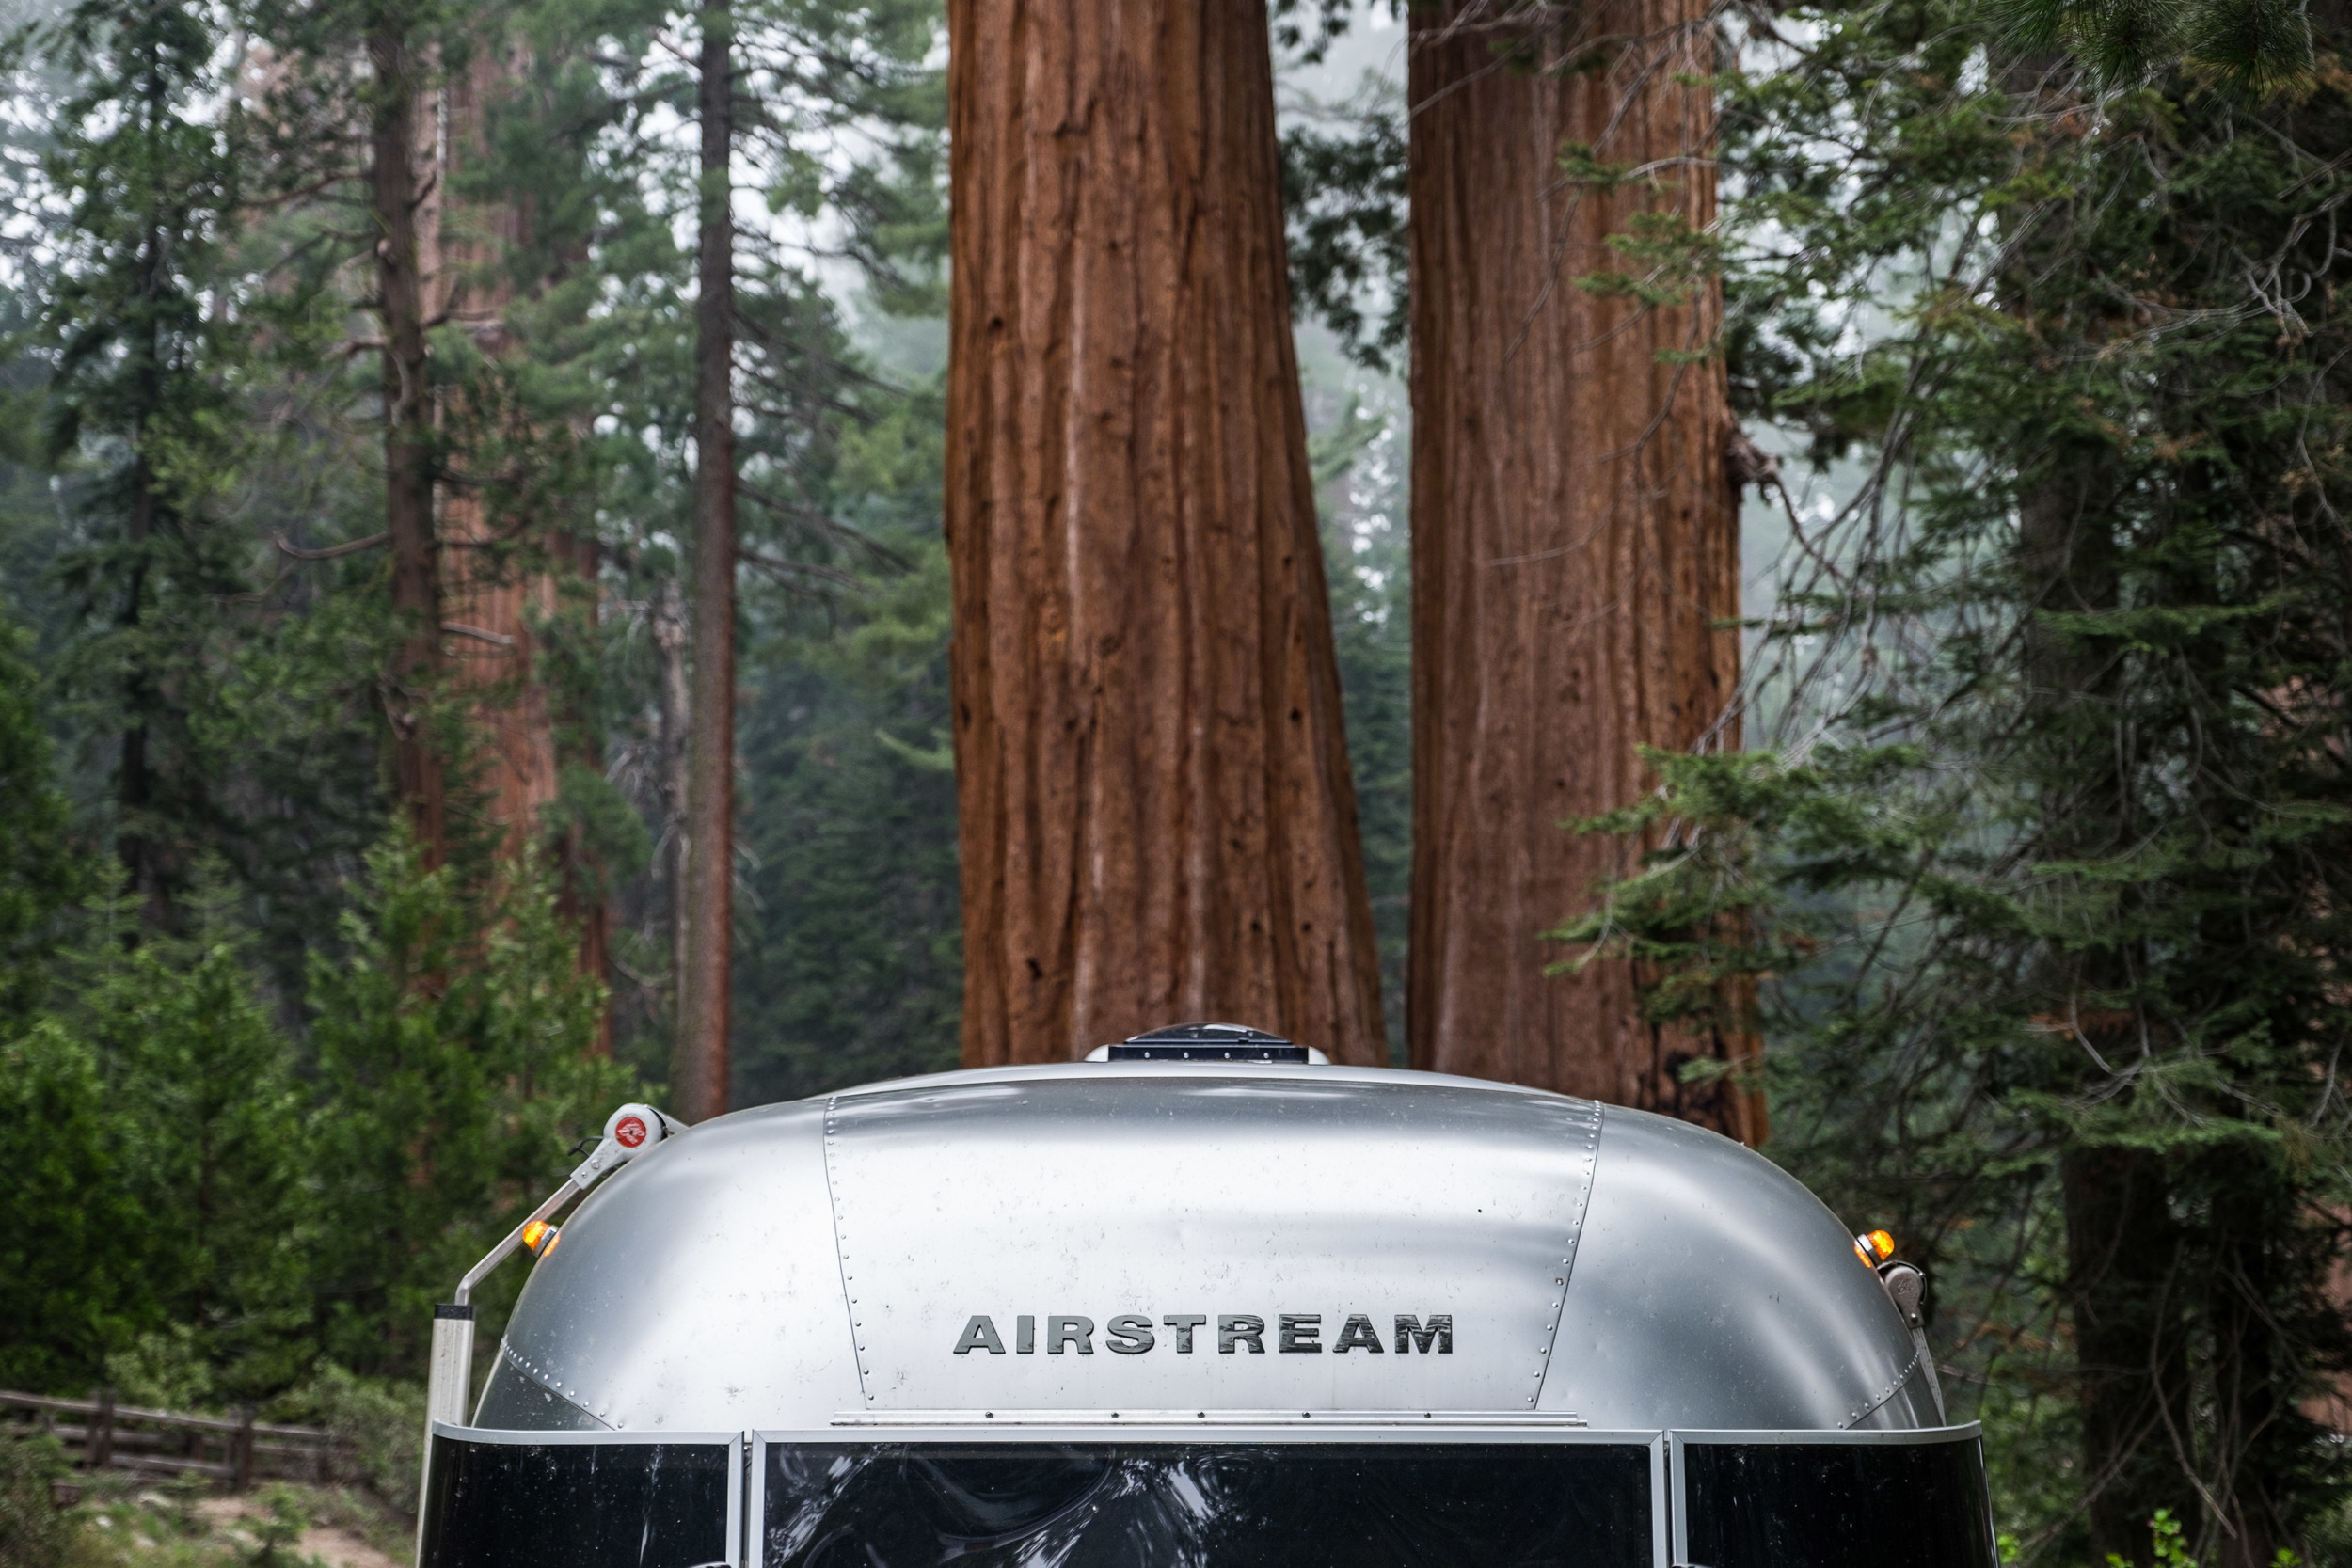 Airstream and the trees...